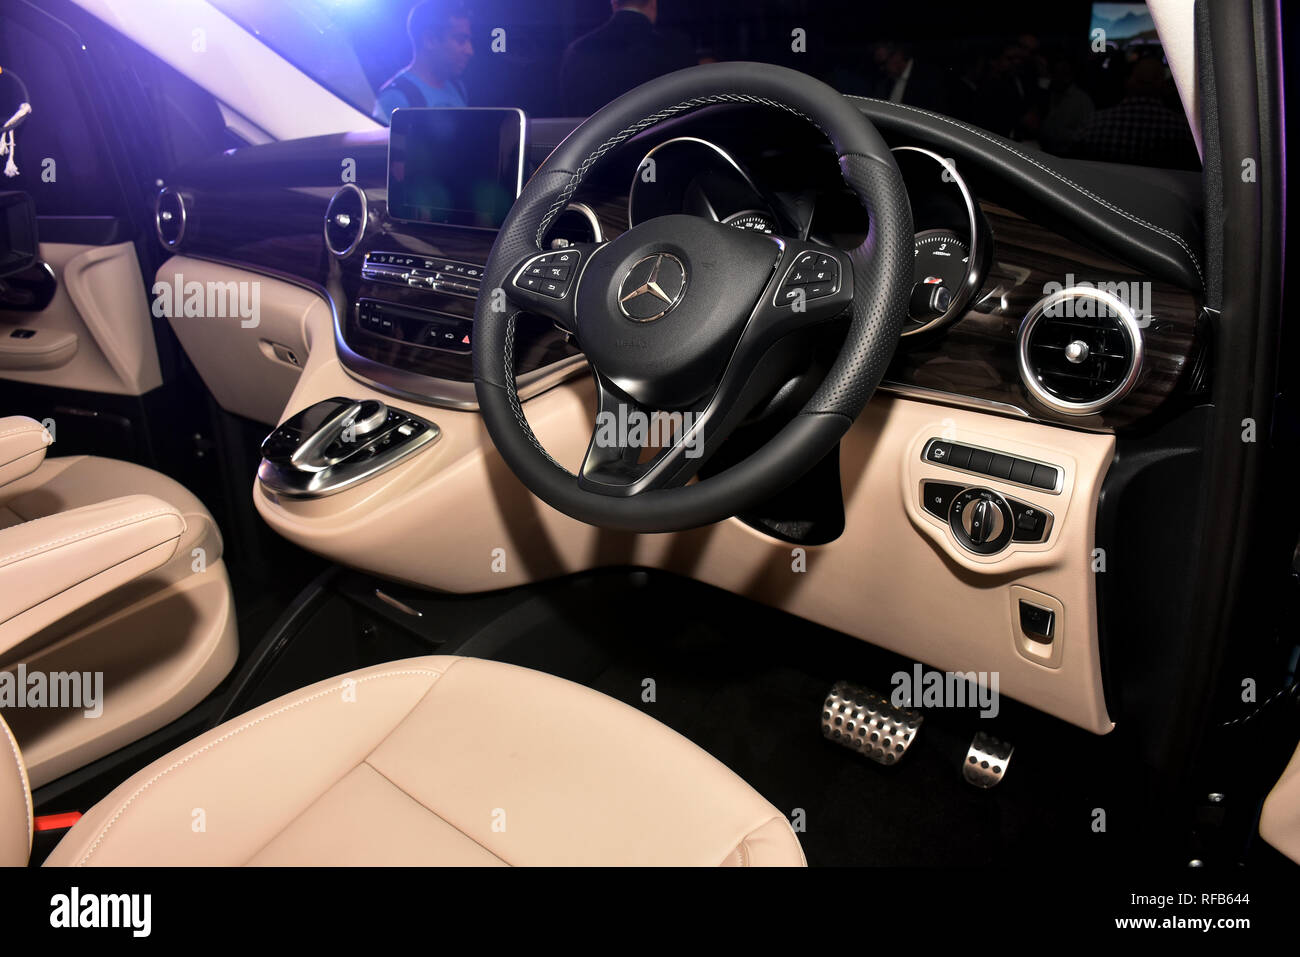 Mumbai, India. 24th Jan, 2019. Interior view of the MPV that gets a new multi-functional steering wheel and a large twin-pod instrument cluster with a MID unit at the centre. The new Mercedes-Benz V-Class will be sold in India as a completely built unit (CBU) priced from 68.40 Lakh and will be imported from Spain. Credit: Azhar Khan/SOPA Images/ZUMA Wire/Alamy Live News - Stock Image